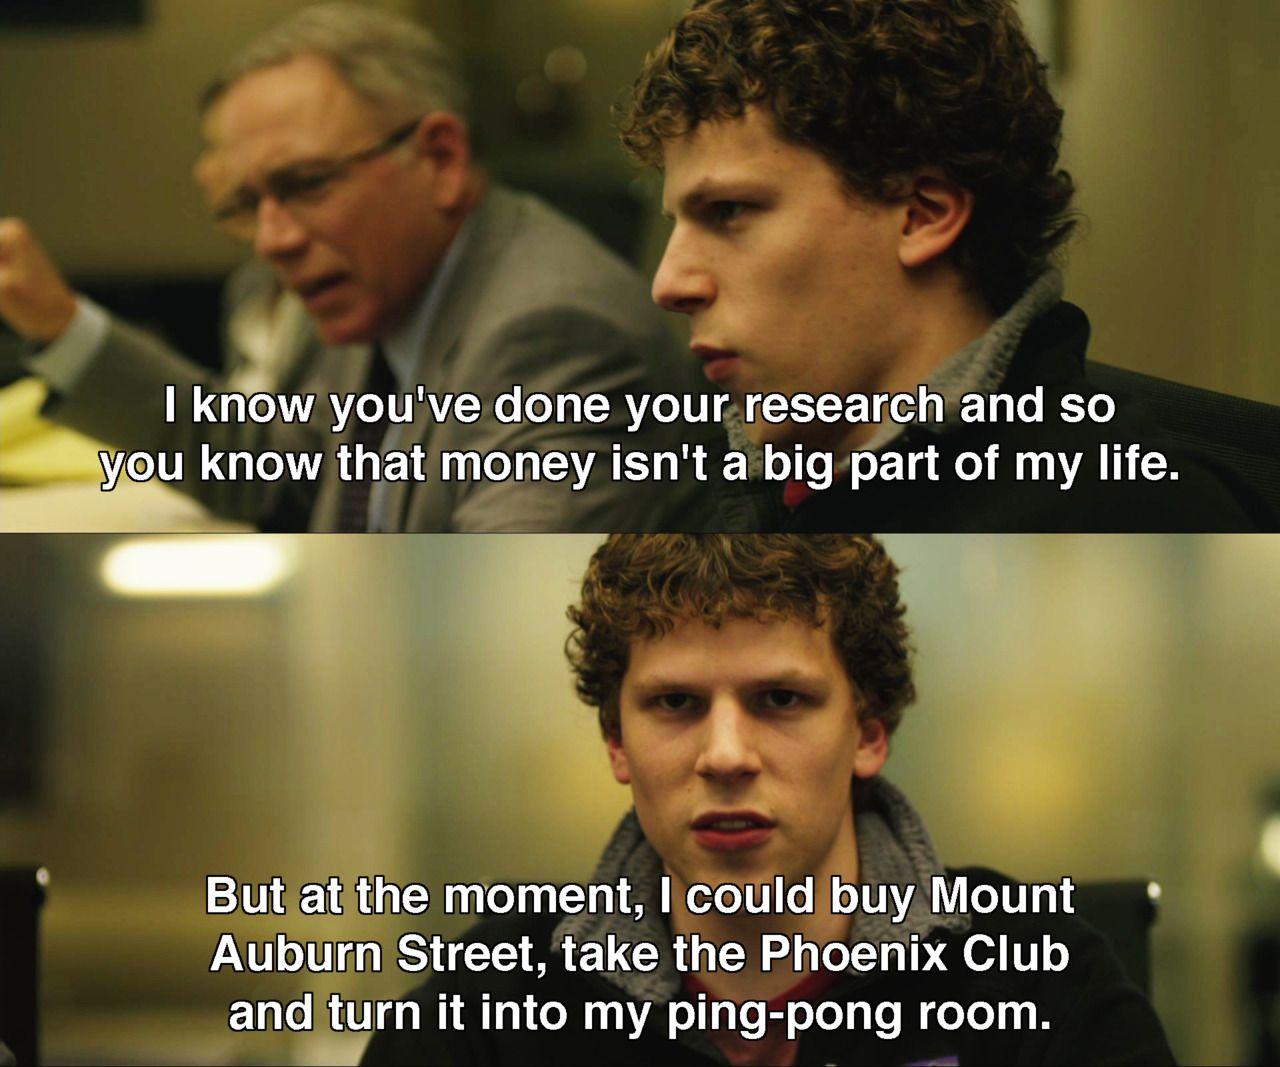 The Social Network 2010 Movie Quotes Social Network Movie The Social Network Quotes Movie Quotes